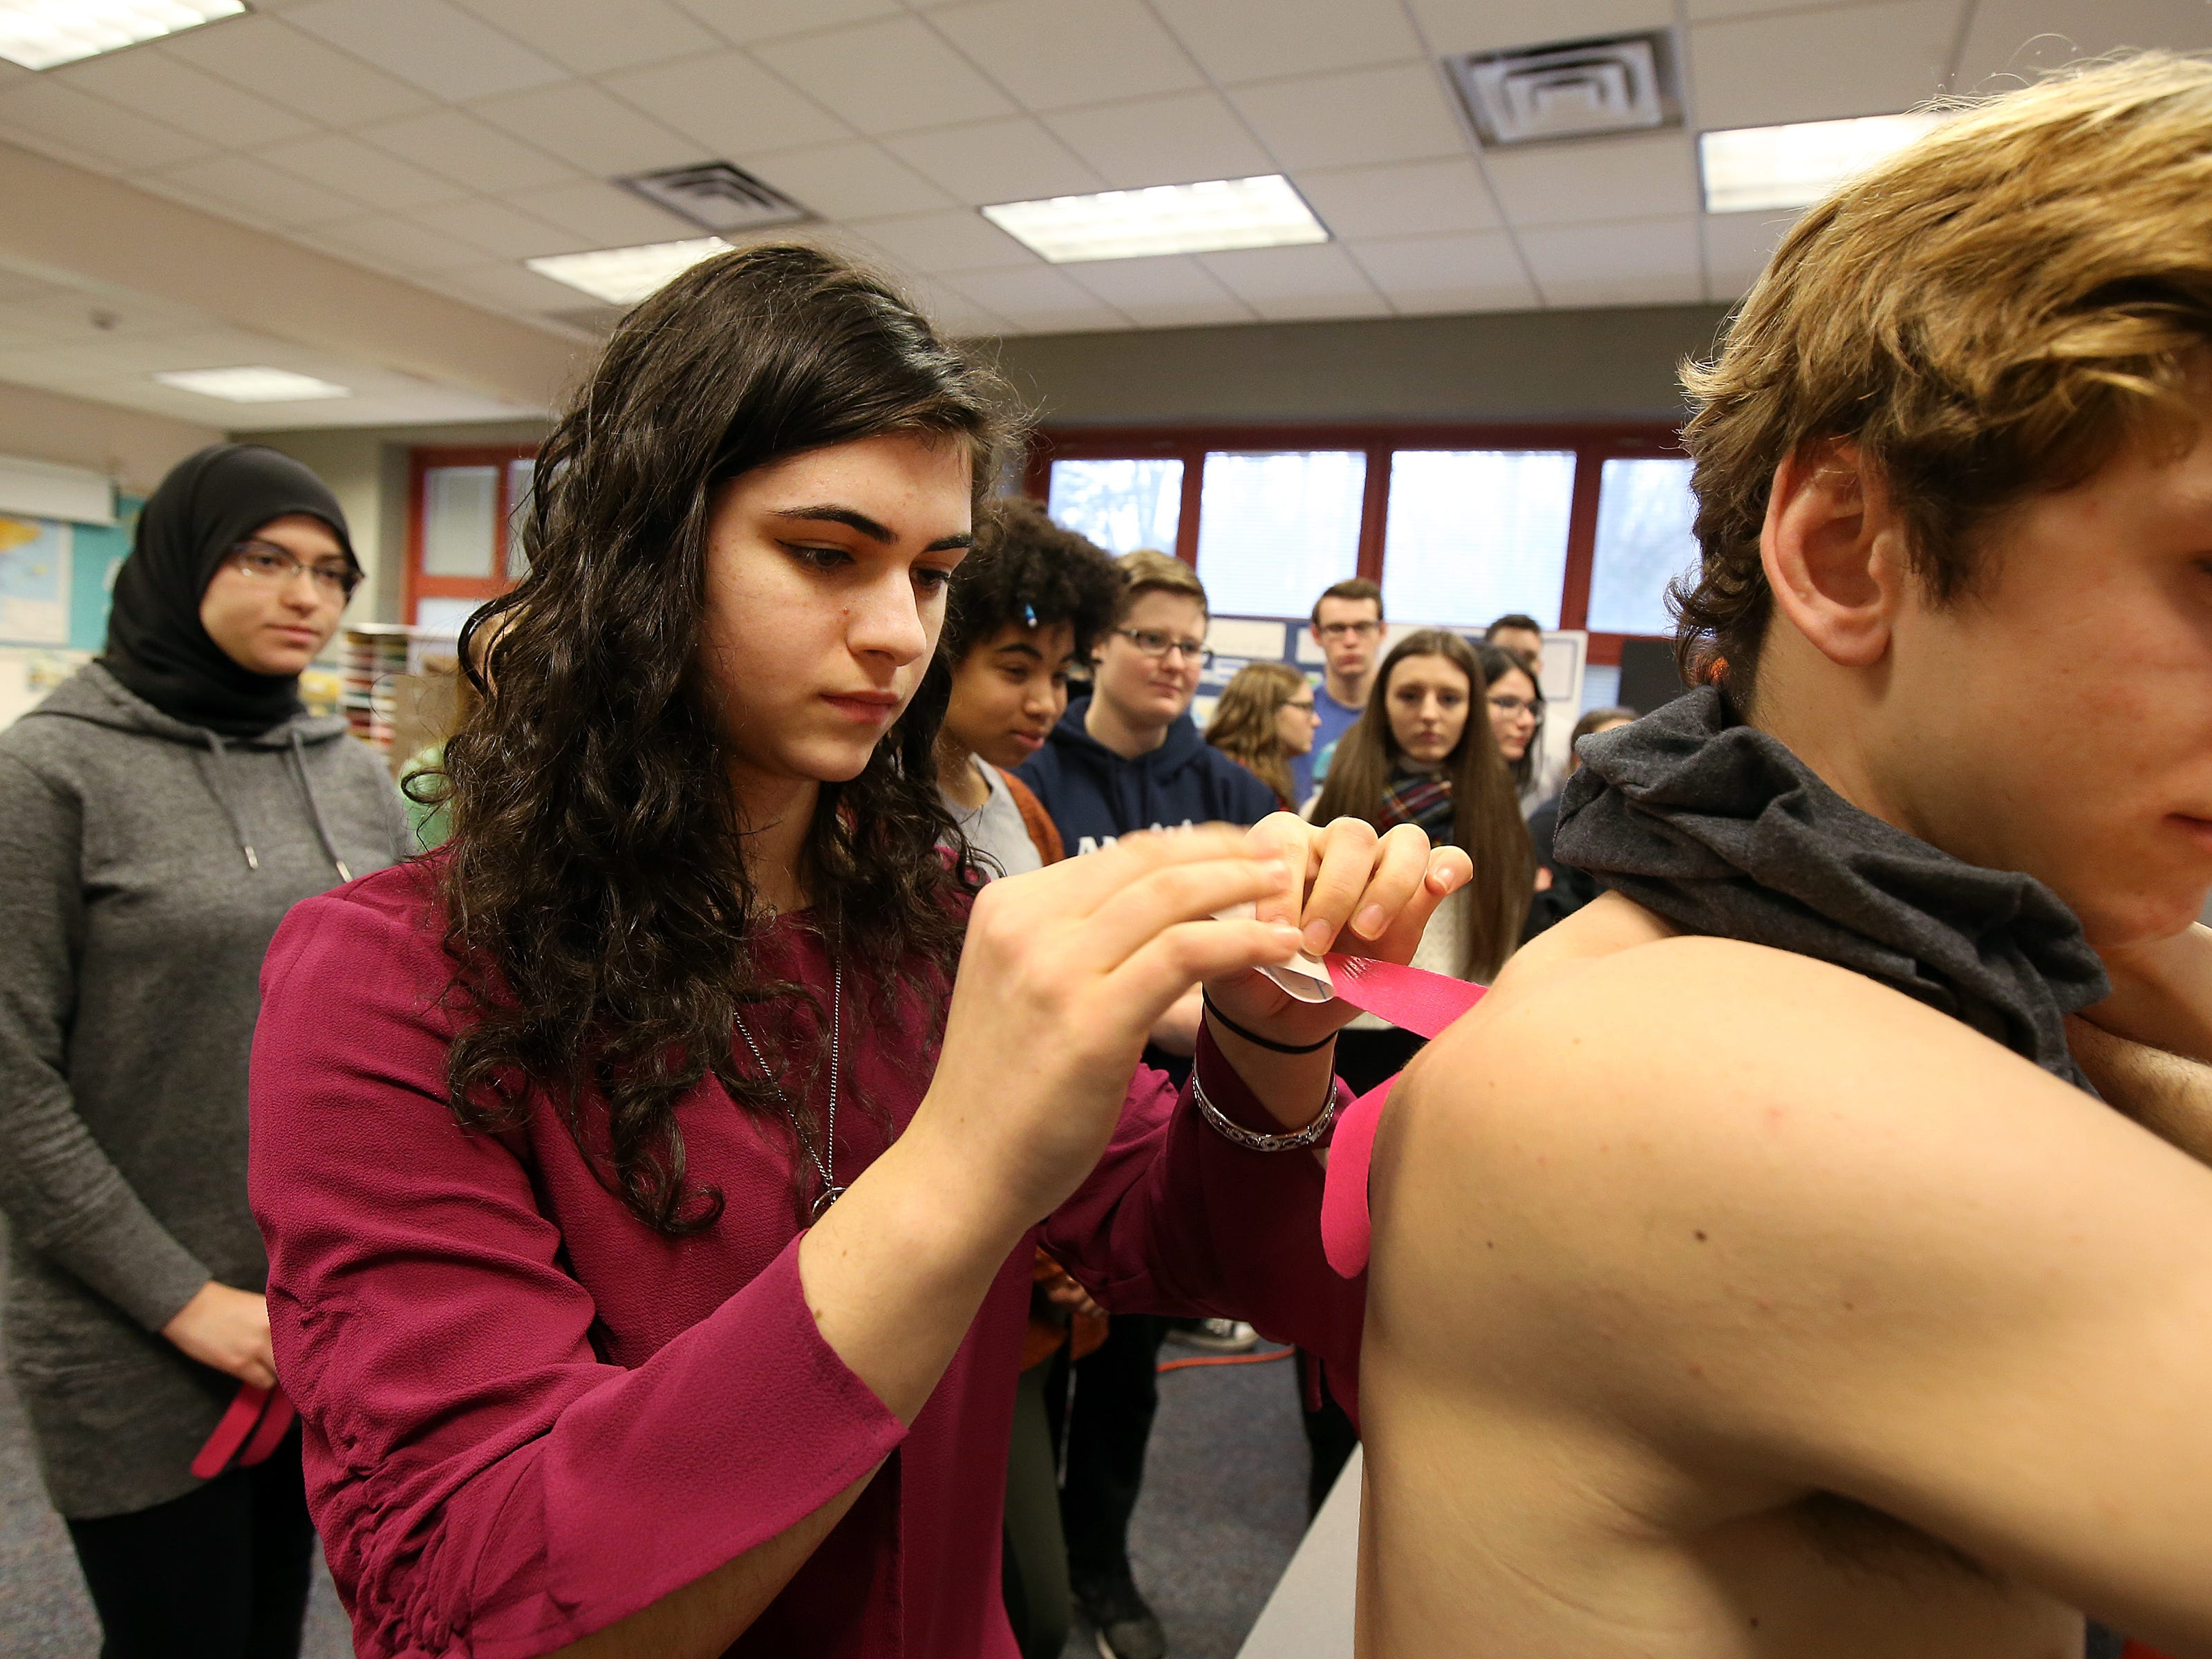 Christina Gulotta, 17, of Manalapan places kinesiology tape on the shoulder of Curran Magnusson, 18, of Spring Lake during their Intro to Physical Therapy class at Monmouth County Academy of Allied Health and Science in Neptune, NJ Tuesday January 8, 2019.